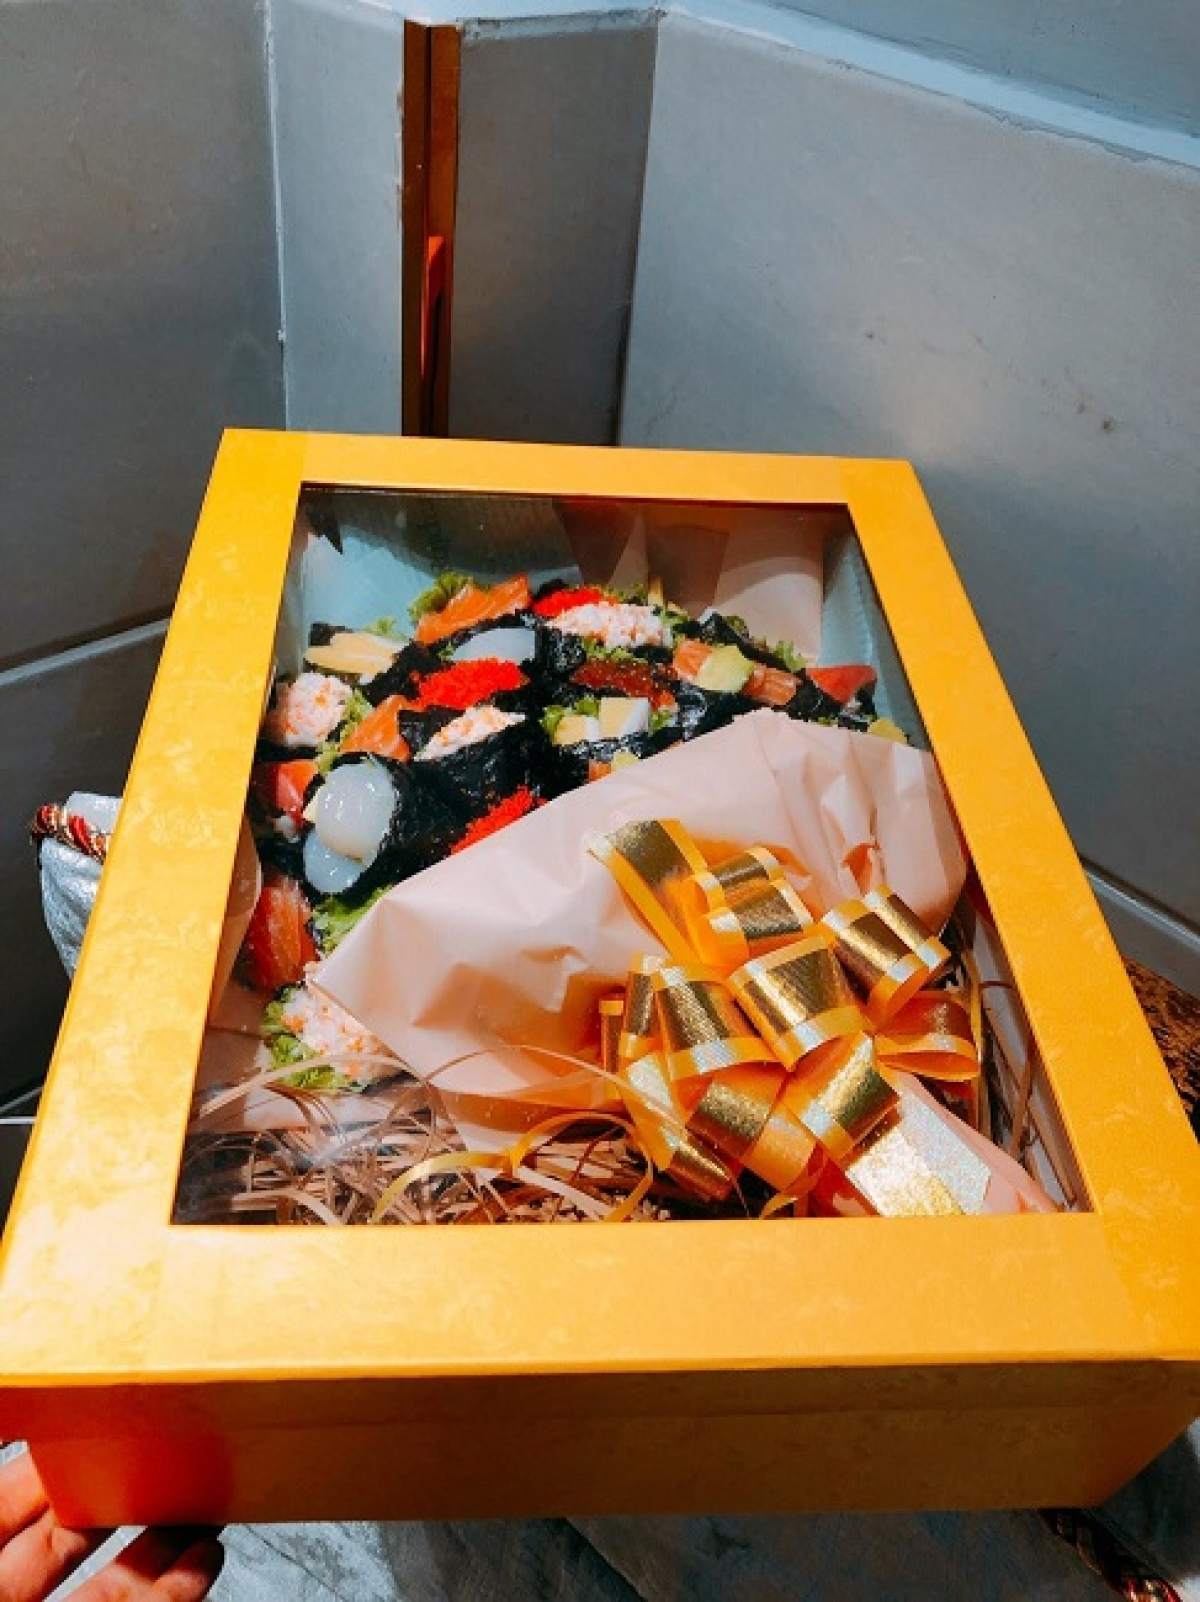 A box containing a sushi bouquet costs VND1.4 million, equivalent to US$60.86.